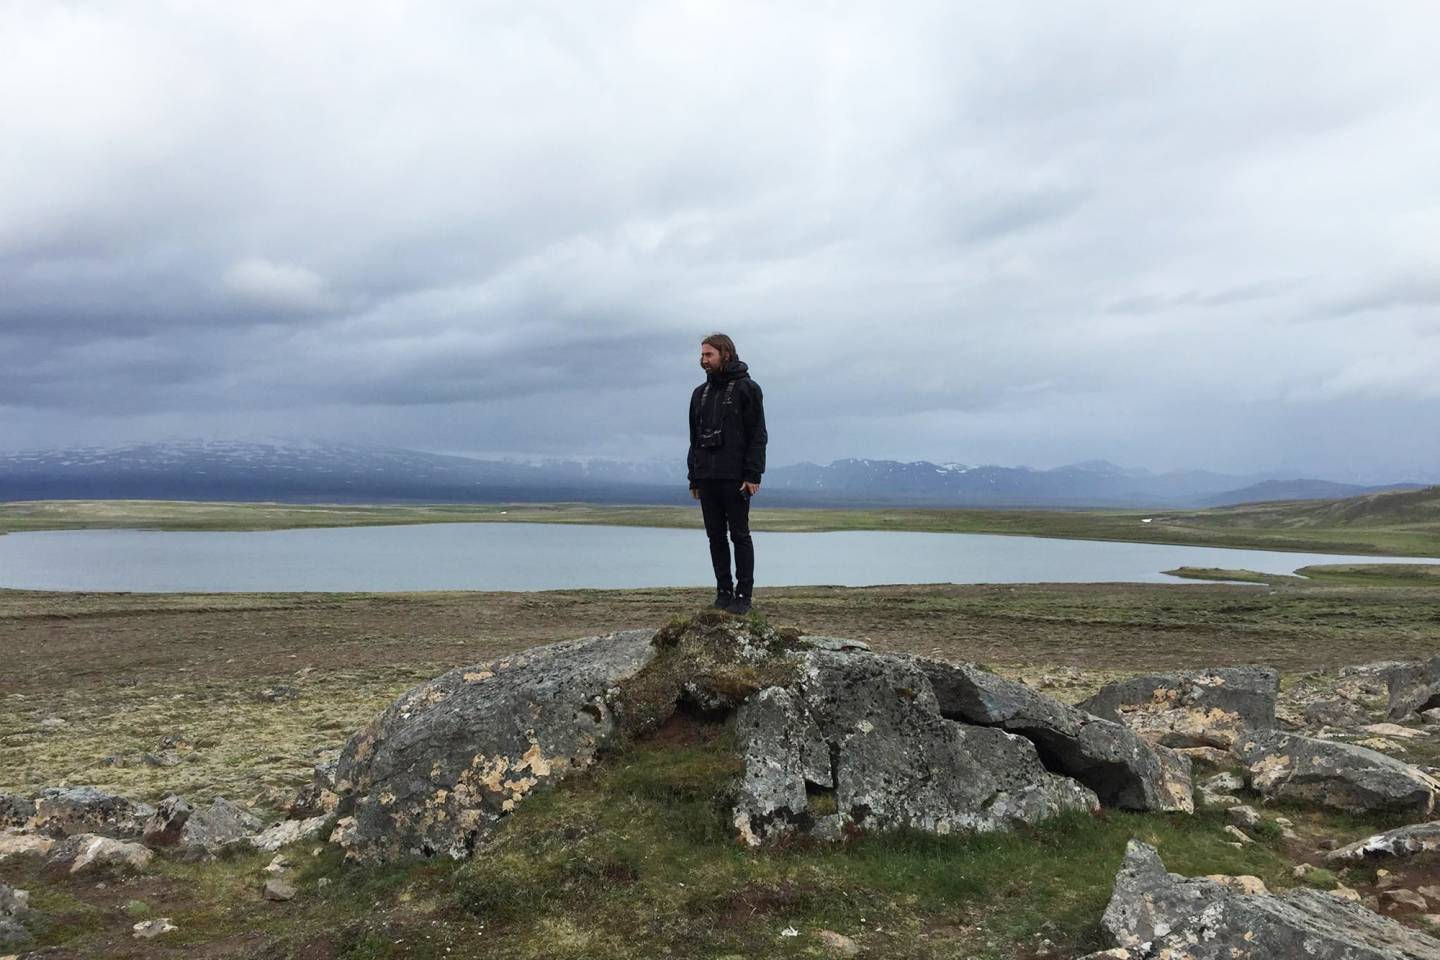 Lindsay Interview | Artist David Booth (Ghostpatrol) on Creativity Within Iceland's Epic Landscape